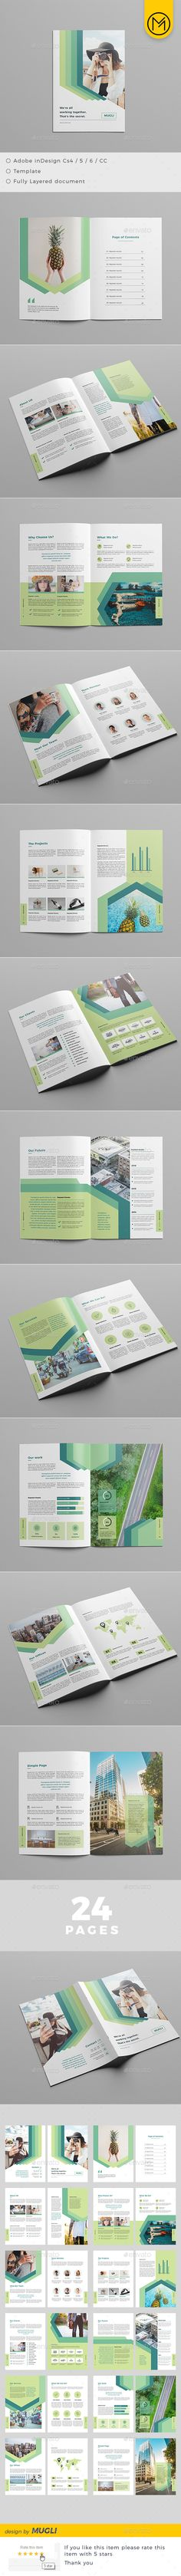 Company Brochure | Folletos